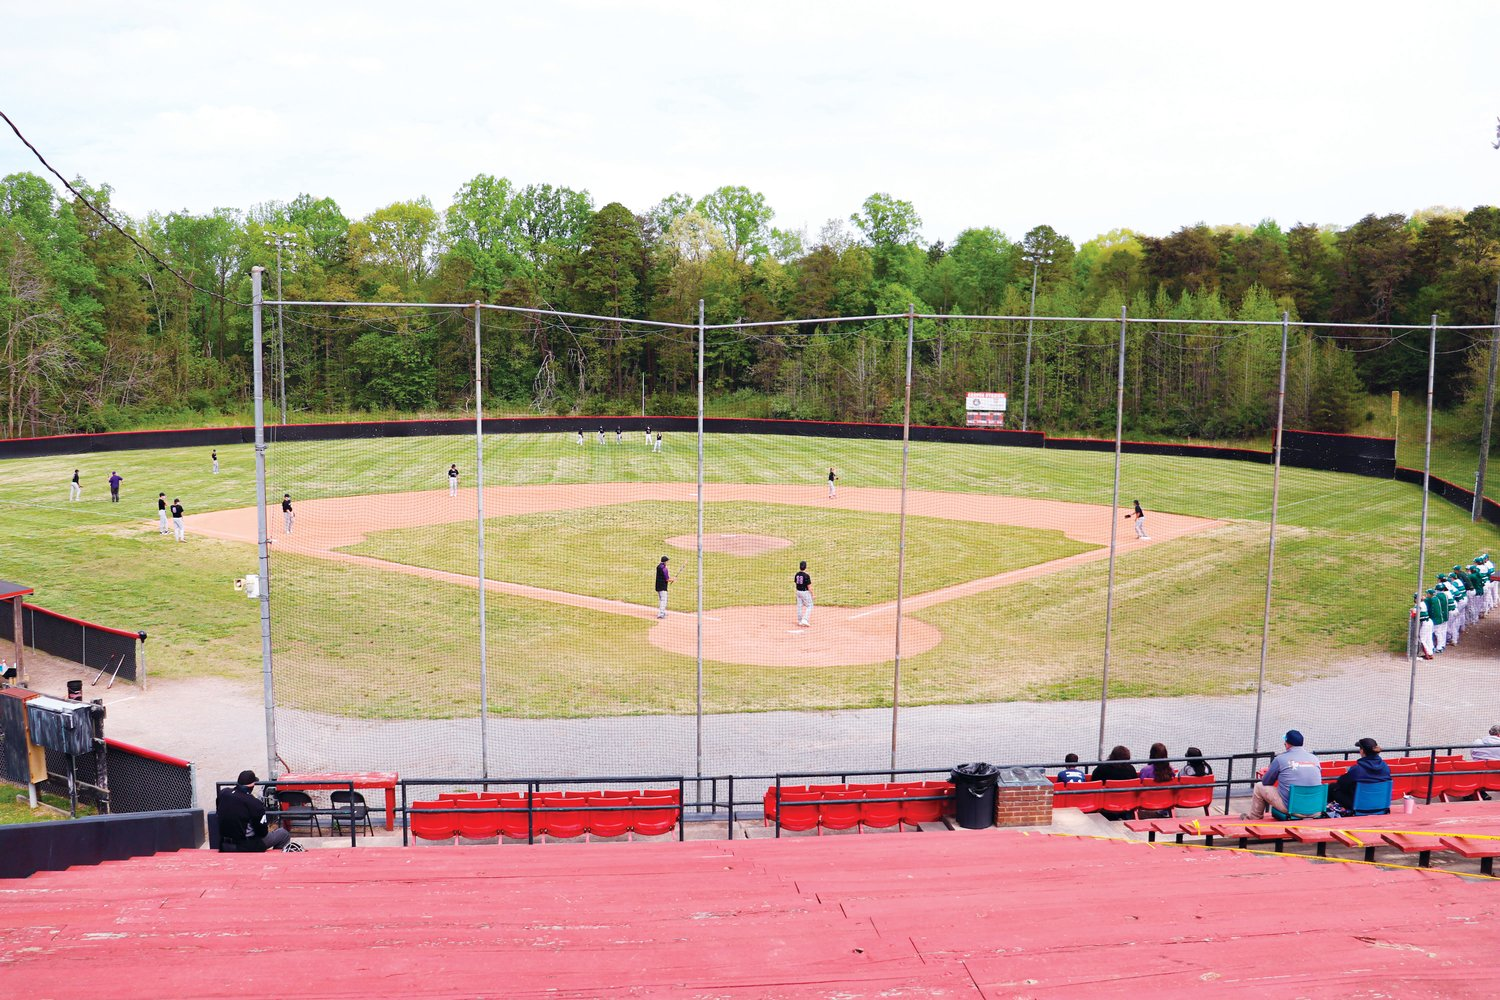 The view of Craven Field in Ramseur ahead of Chatham Charter's baseball scrimmage with North Moore during the Grady Lawson Memorial Baseball Tournament on Saturday. Two games were played at Craven; the other two at Eastern Randolph High School; with all proceeds going toward the Grady Lawson Memorial Scholarship Fund.